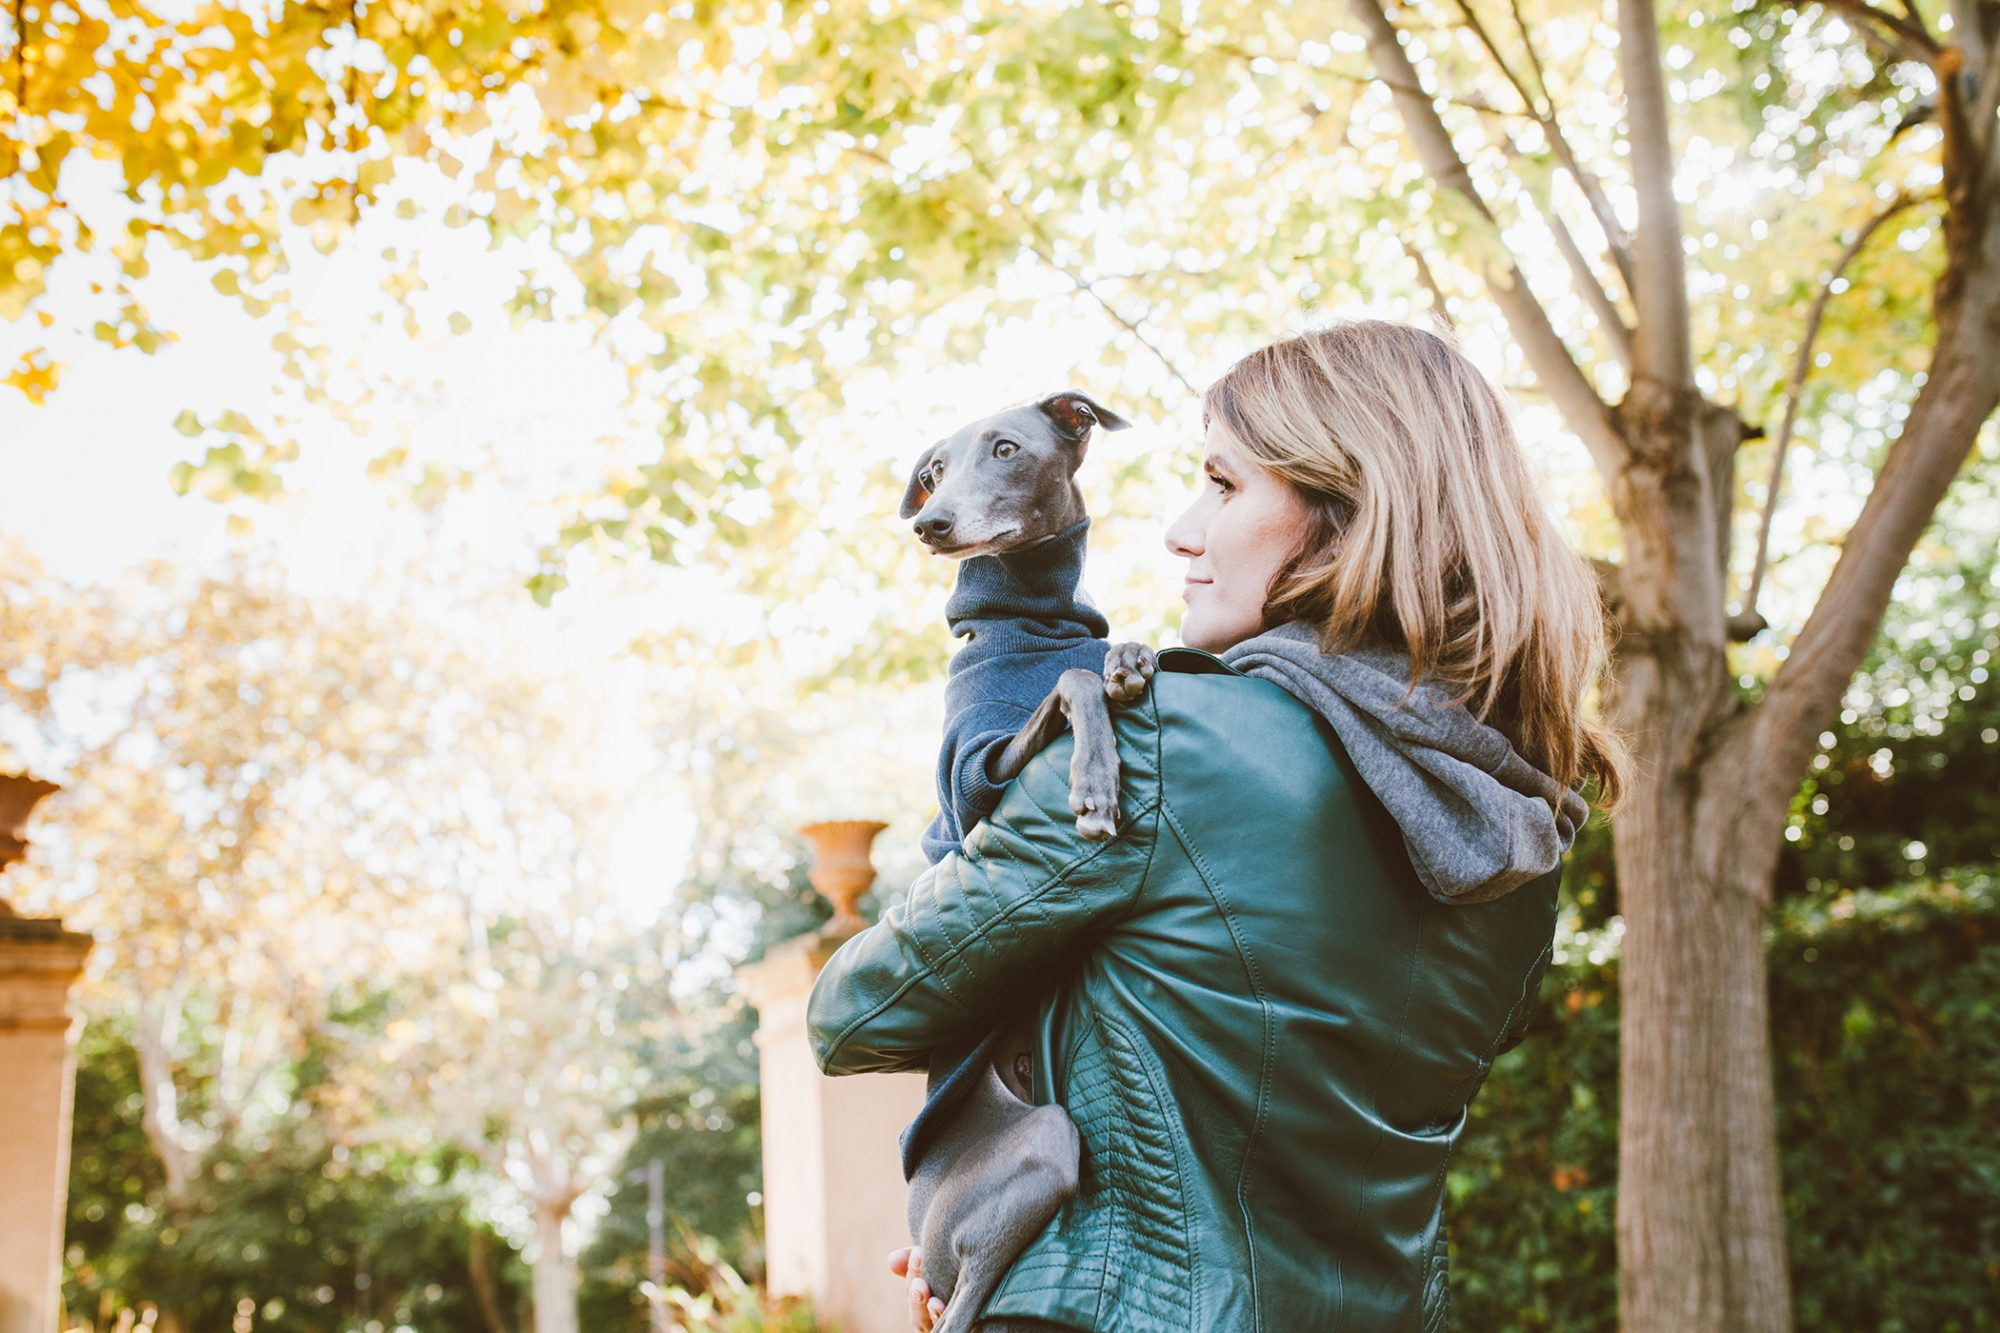 woman wearing a leather jacket holding an italian greyhound wearing a turtleneck sweater outdoors